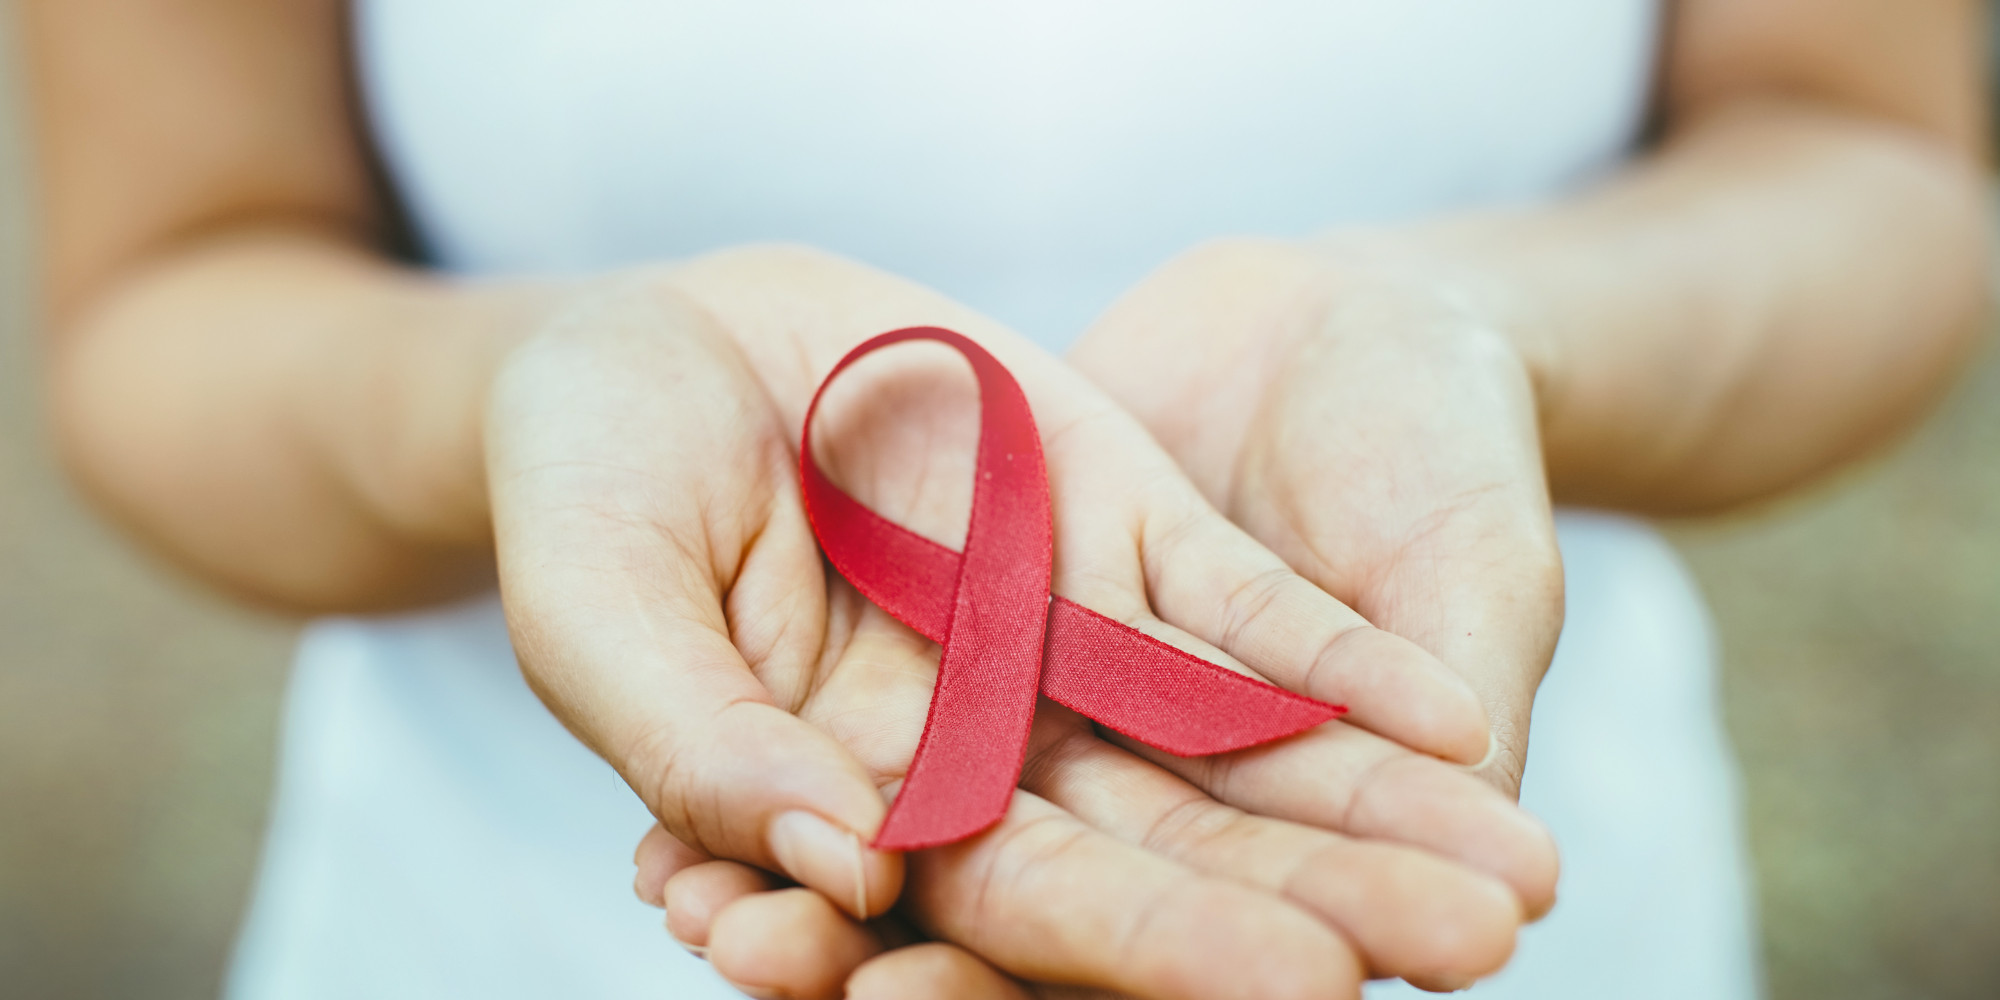 Combating Hiv Aids Through Innovative Commerce